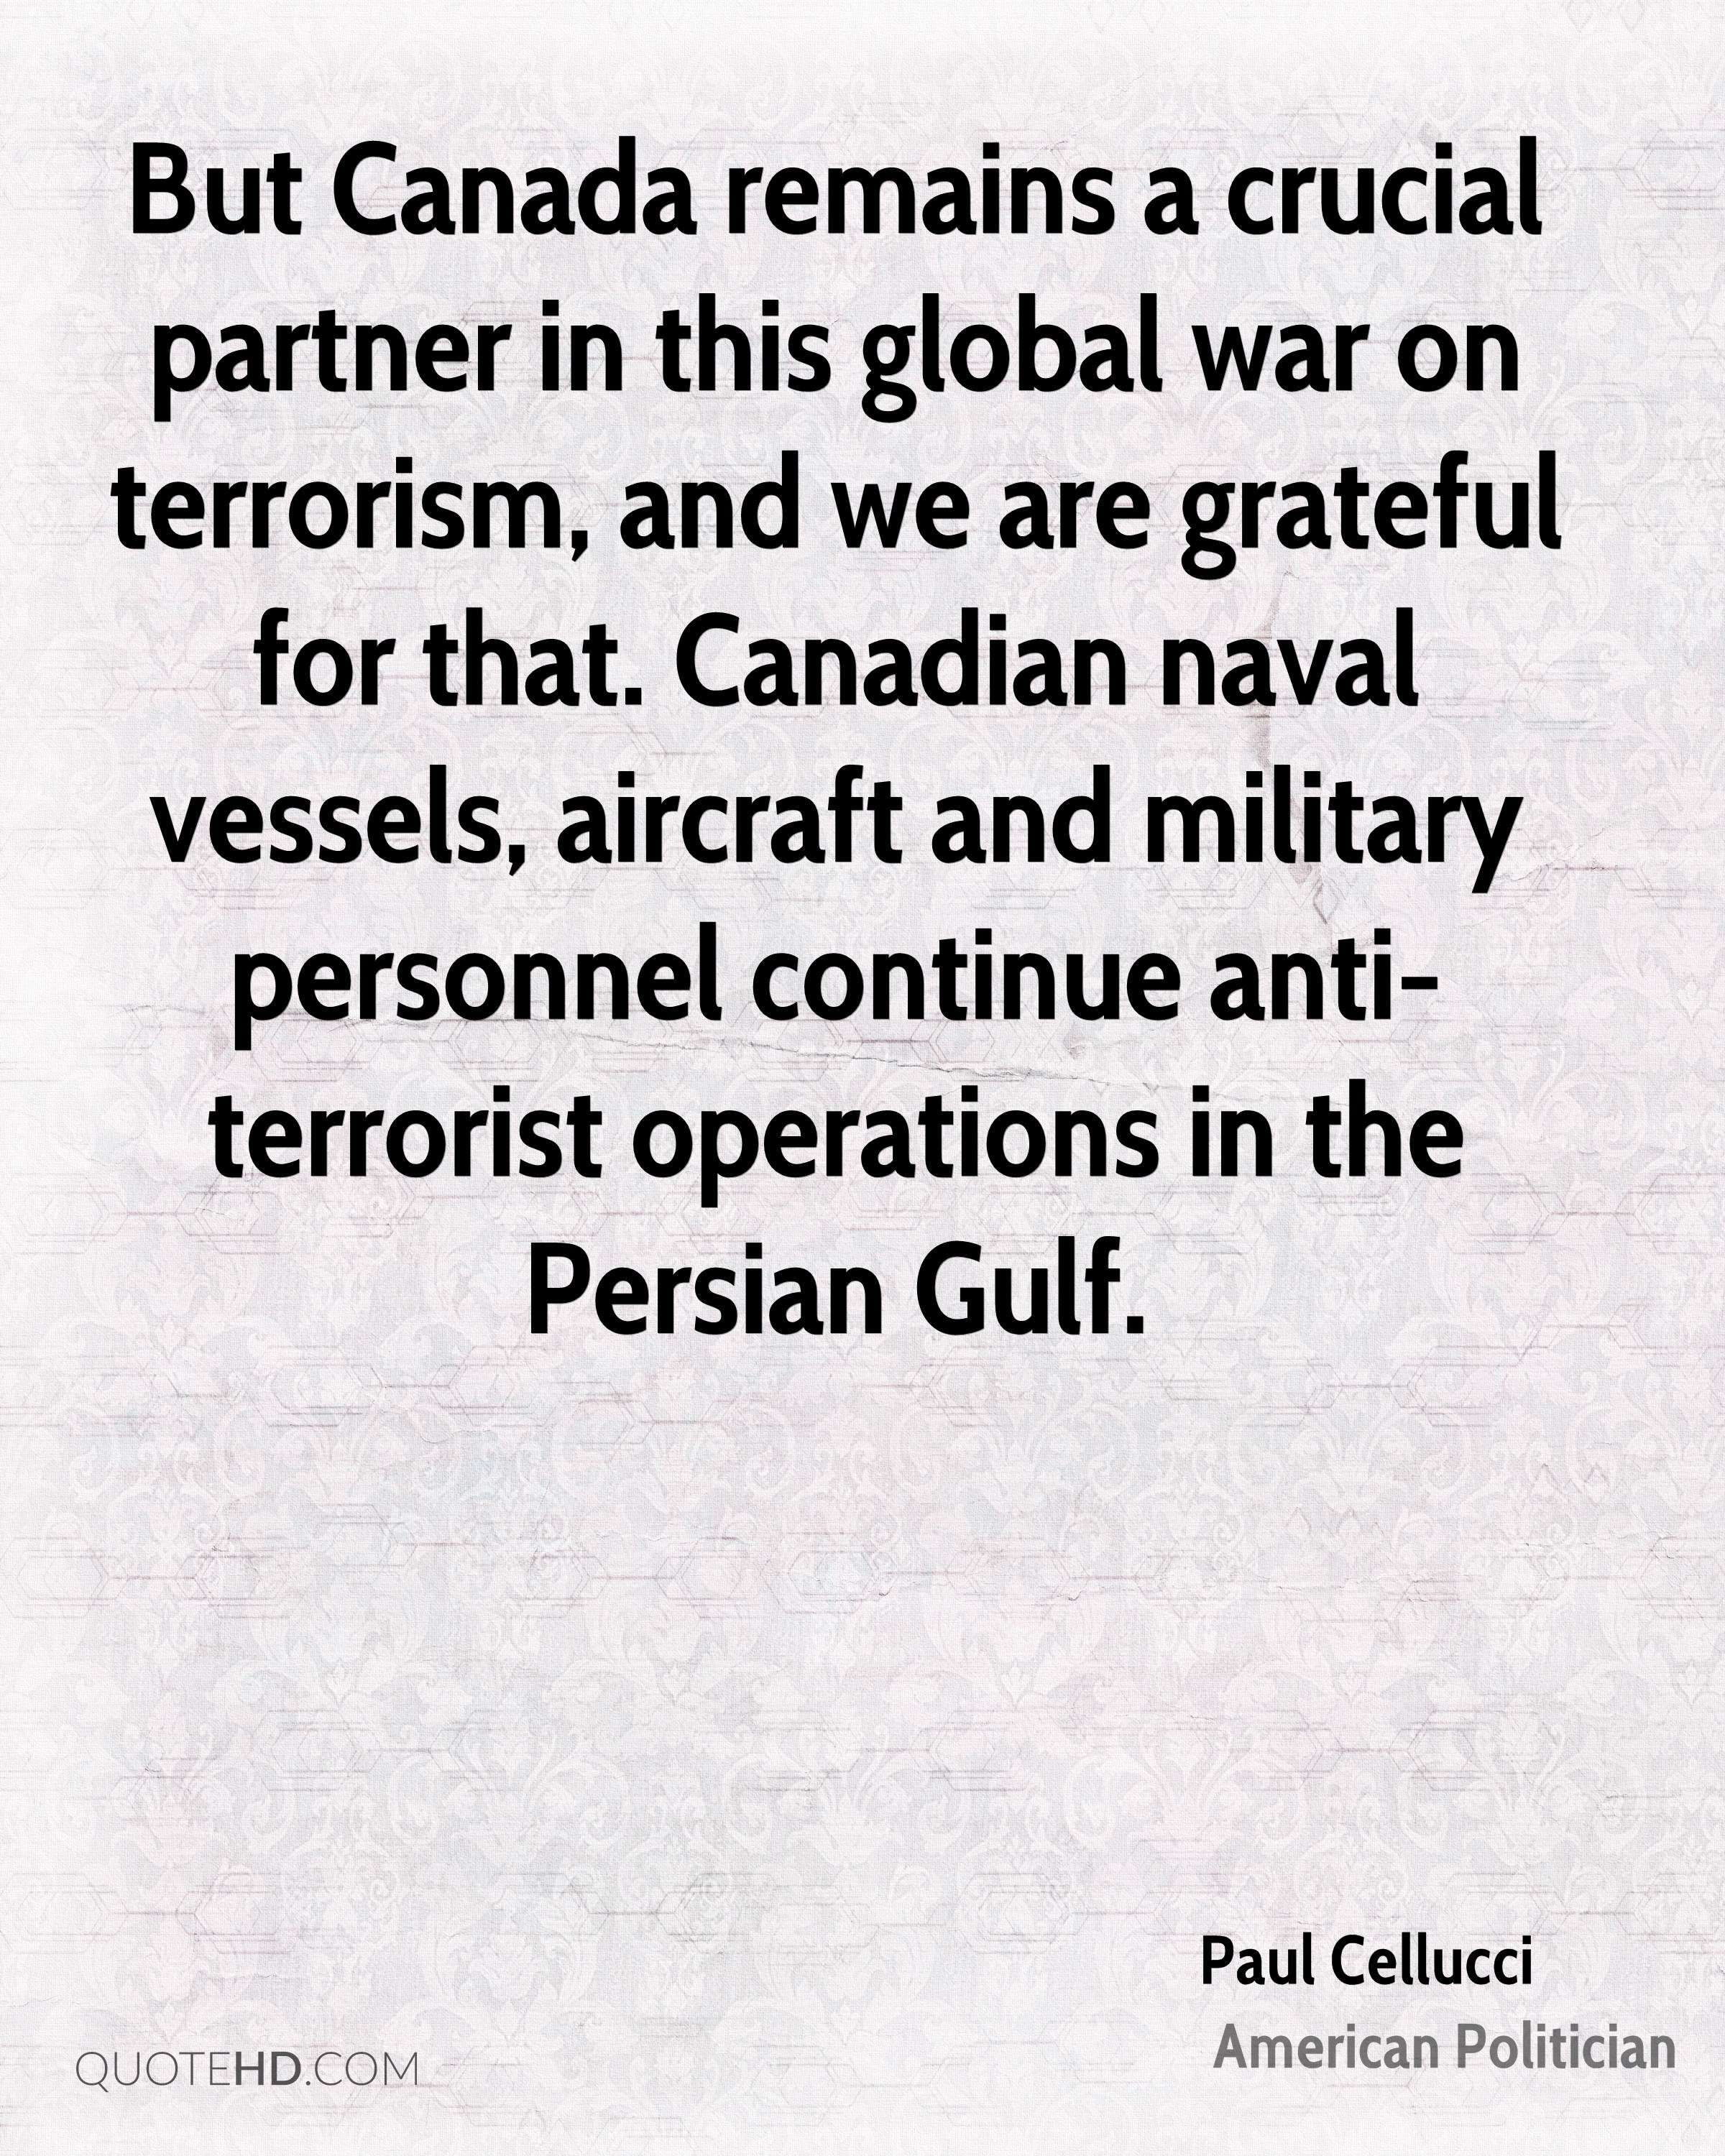 But Canada remains a crucial partner in this global war on terrorism, and we are grateful for that. Canadian naval vessels, aircraft and military personnel continue anti-terrorist operations in the Persian Gulf.